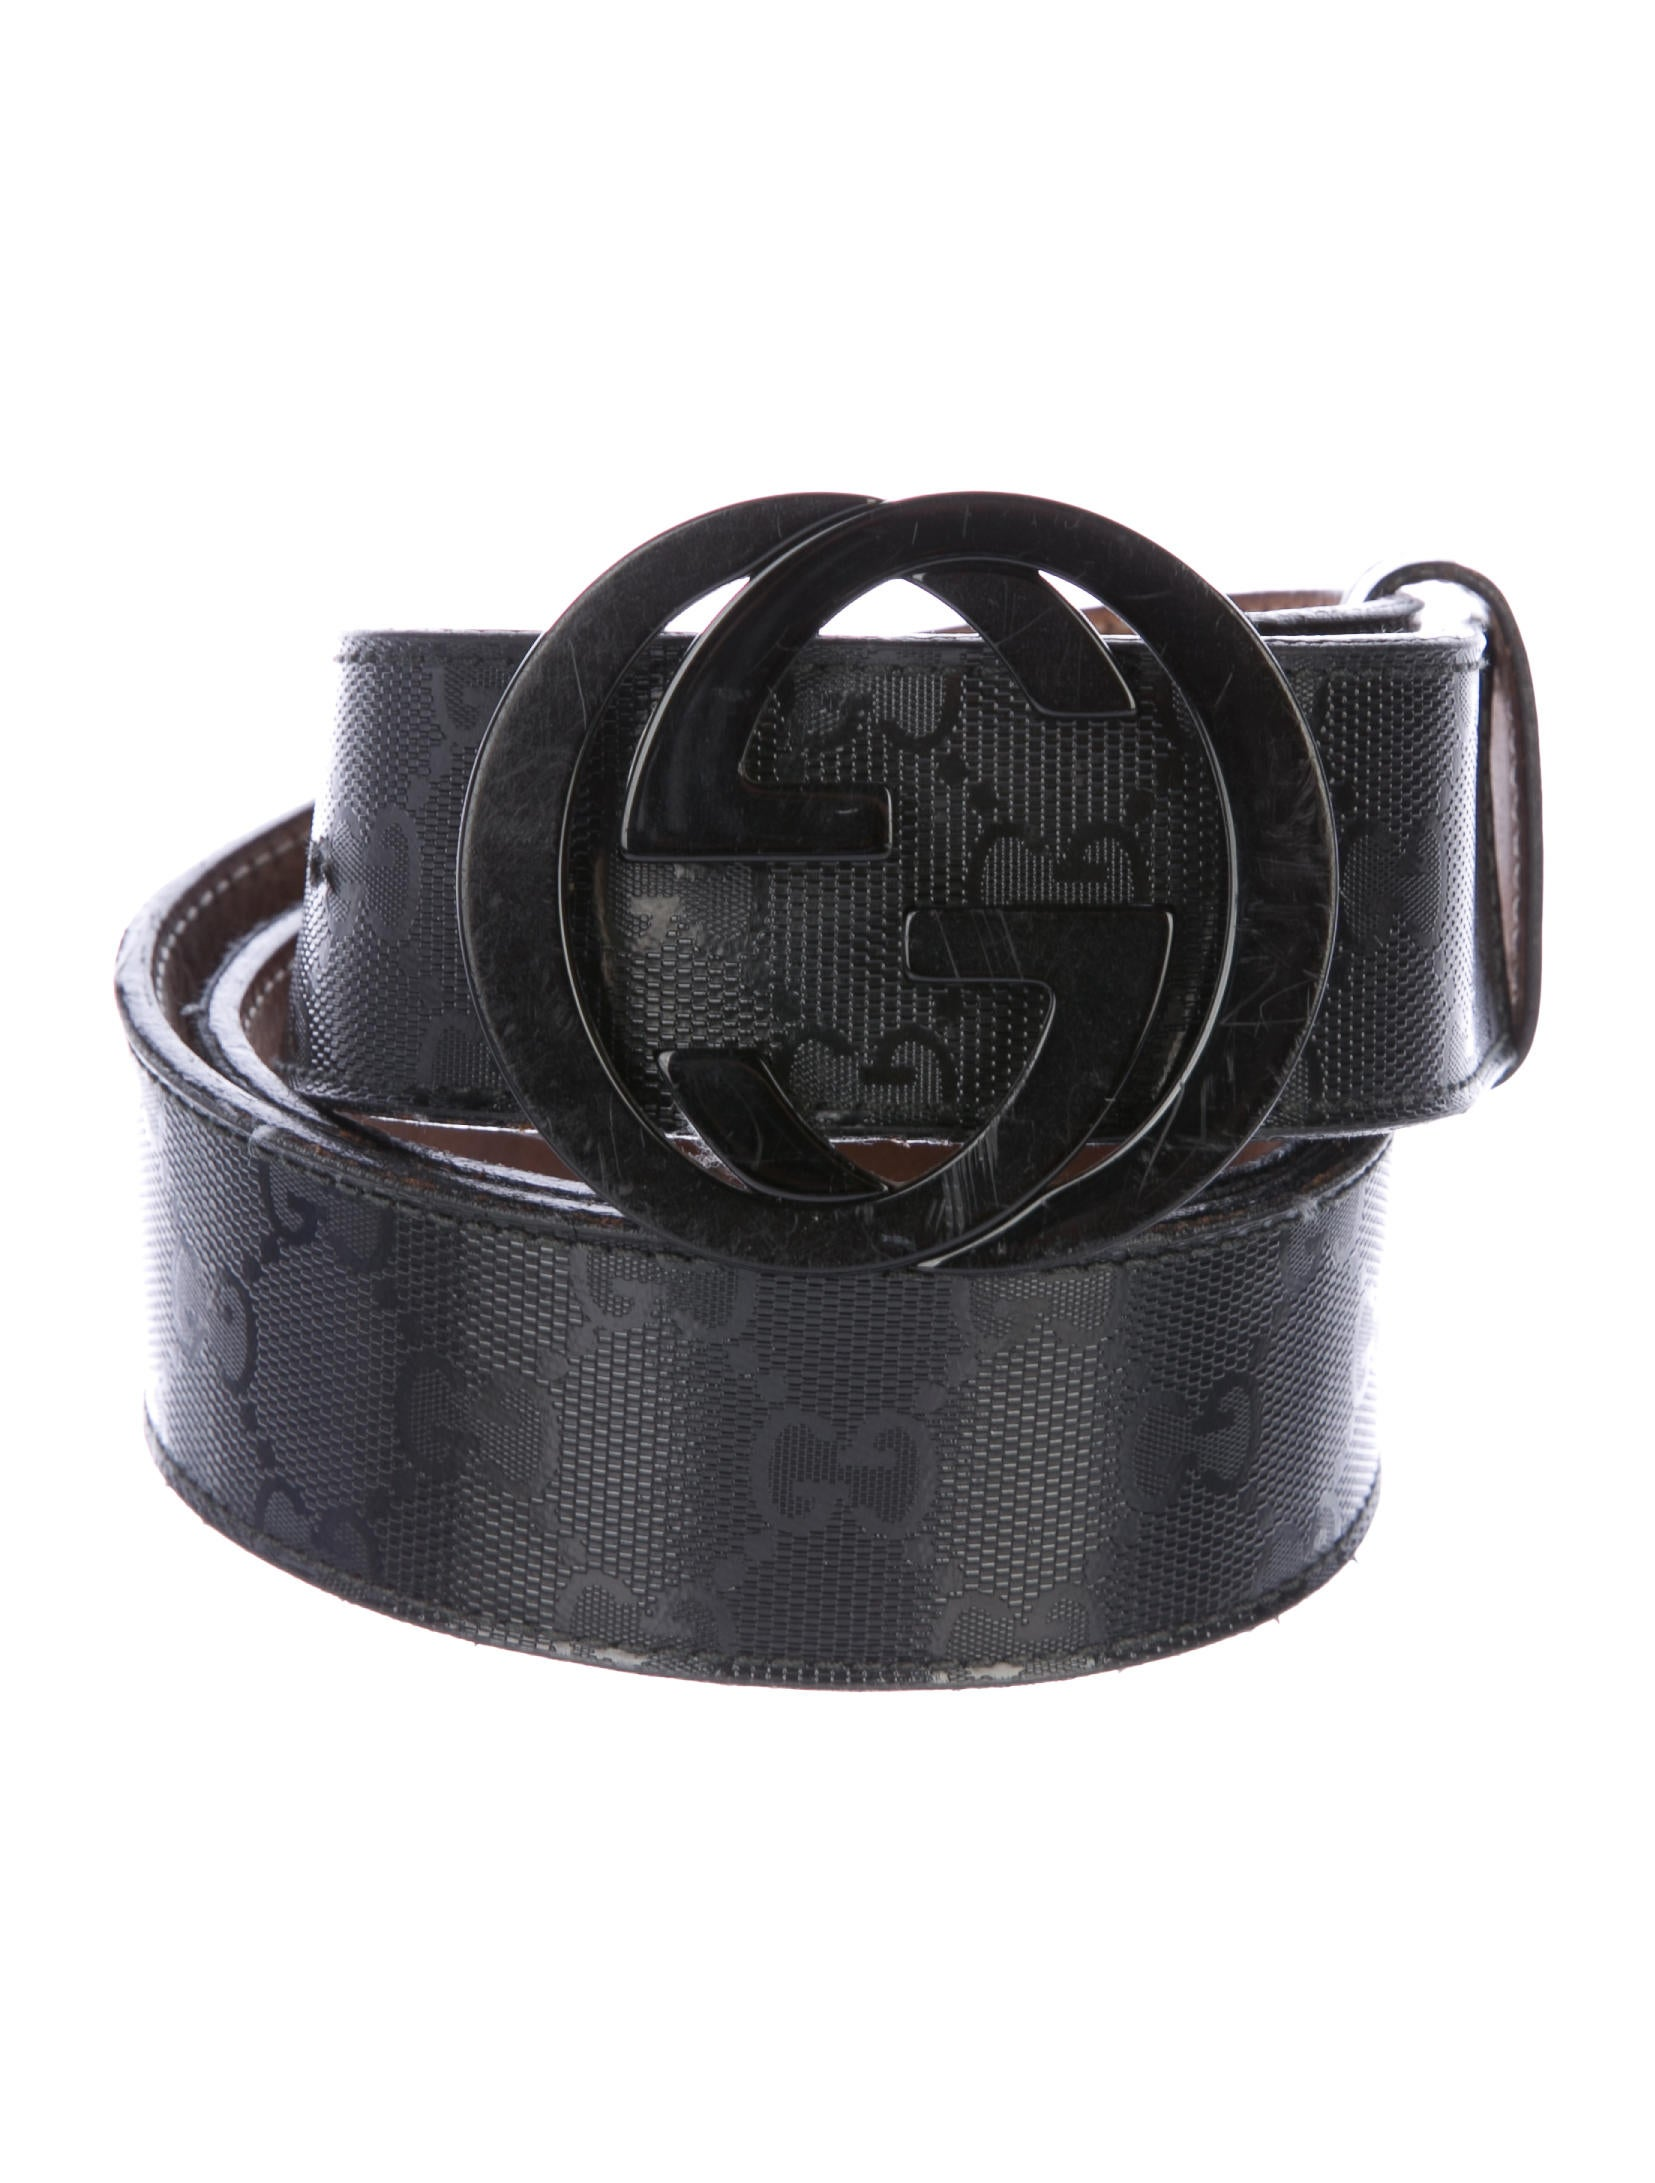 3be2f5f42 Gucci GG Imprimé GG Belt - Accessories - GUC264434 | The RealReal